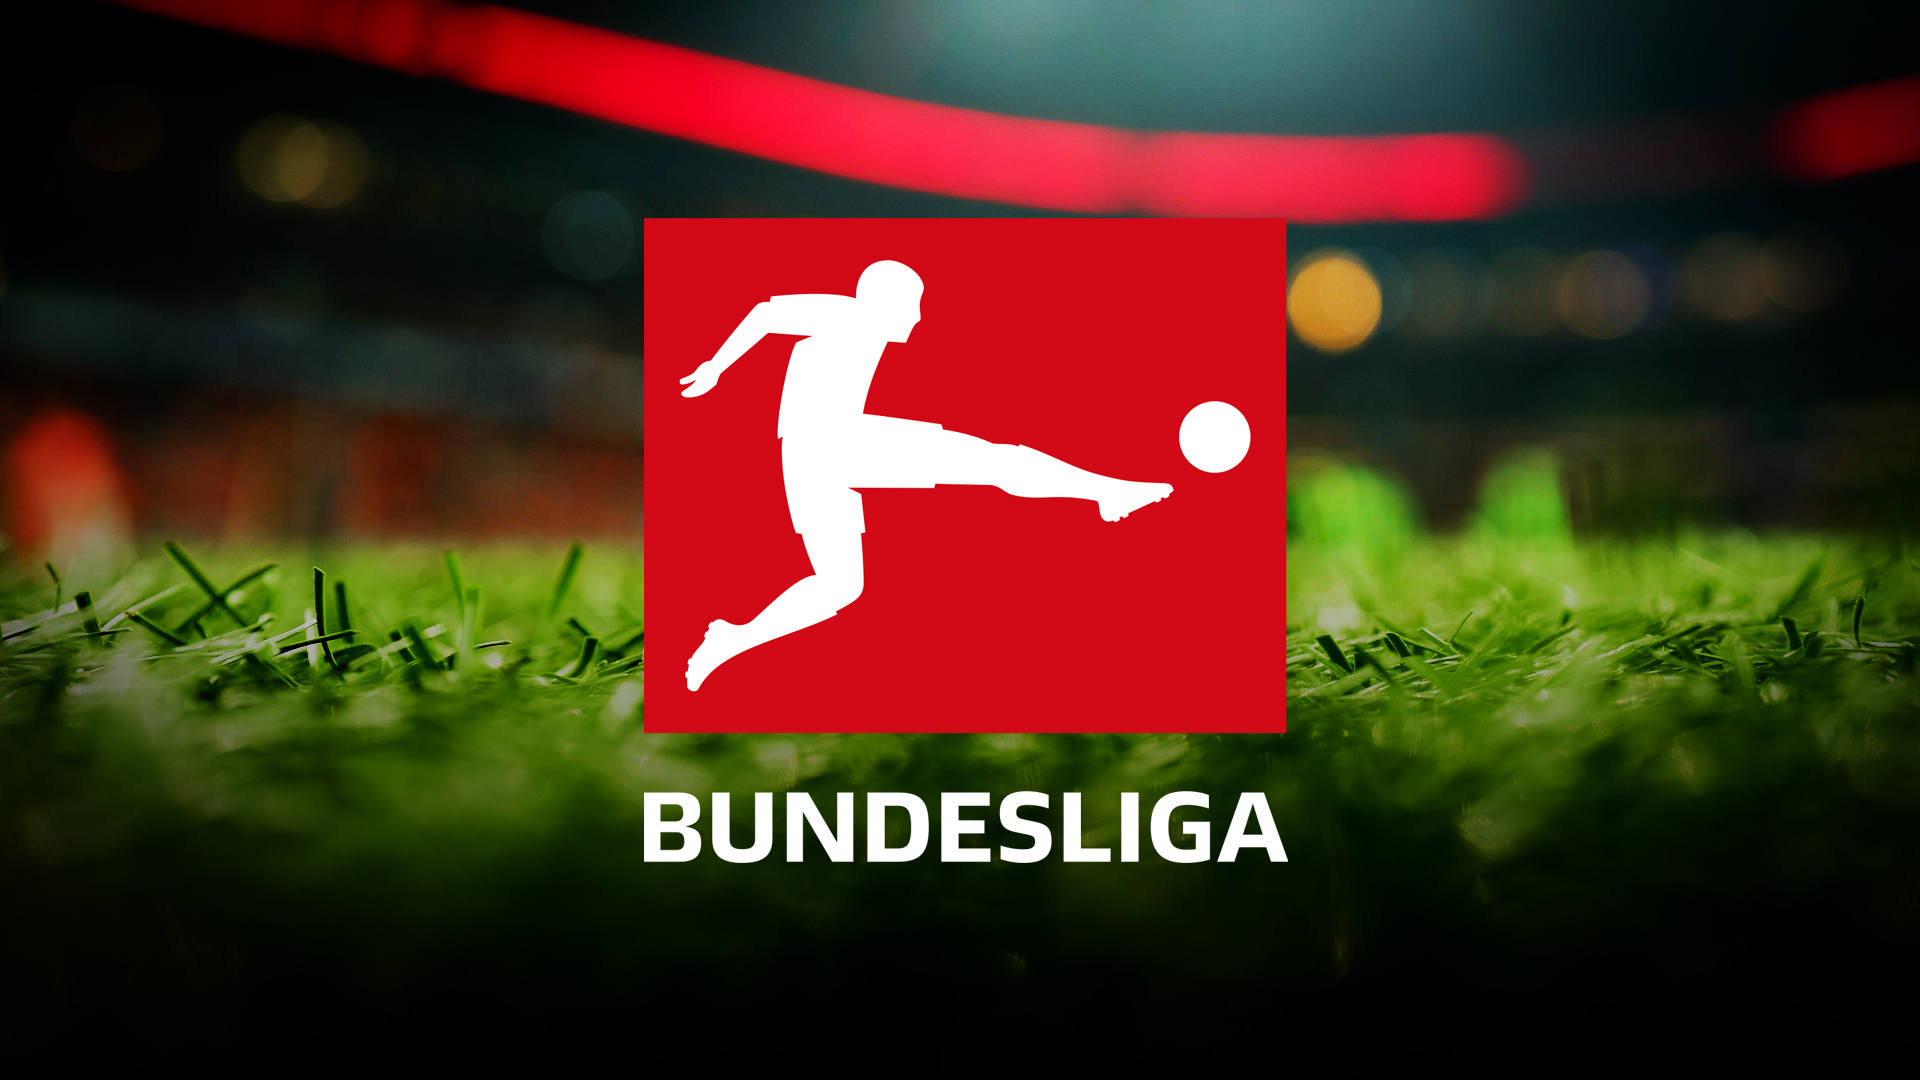 Bundesliga Wins Multiple Awards in China – Most Influential League and Best Online Campaign - EN - DFL Deutsche Fußball Liga GmbH